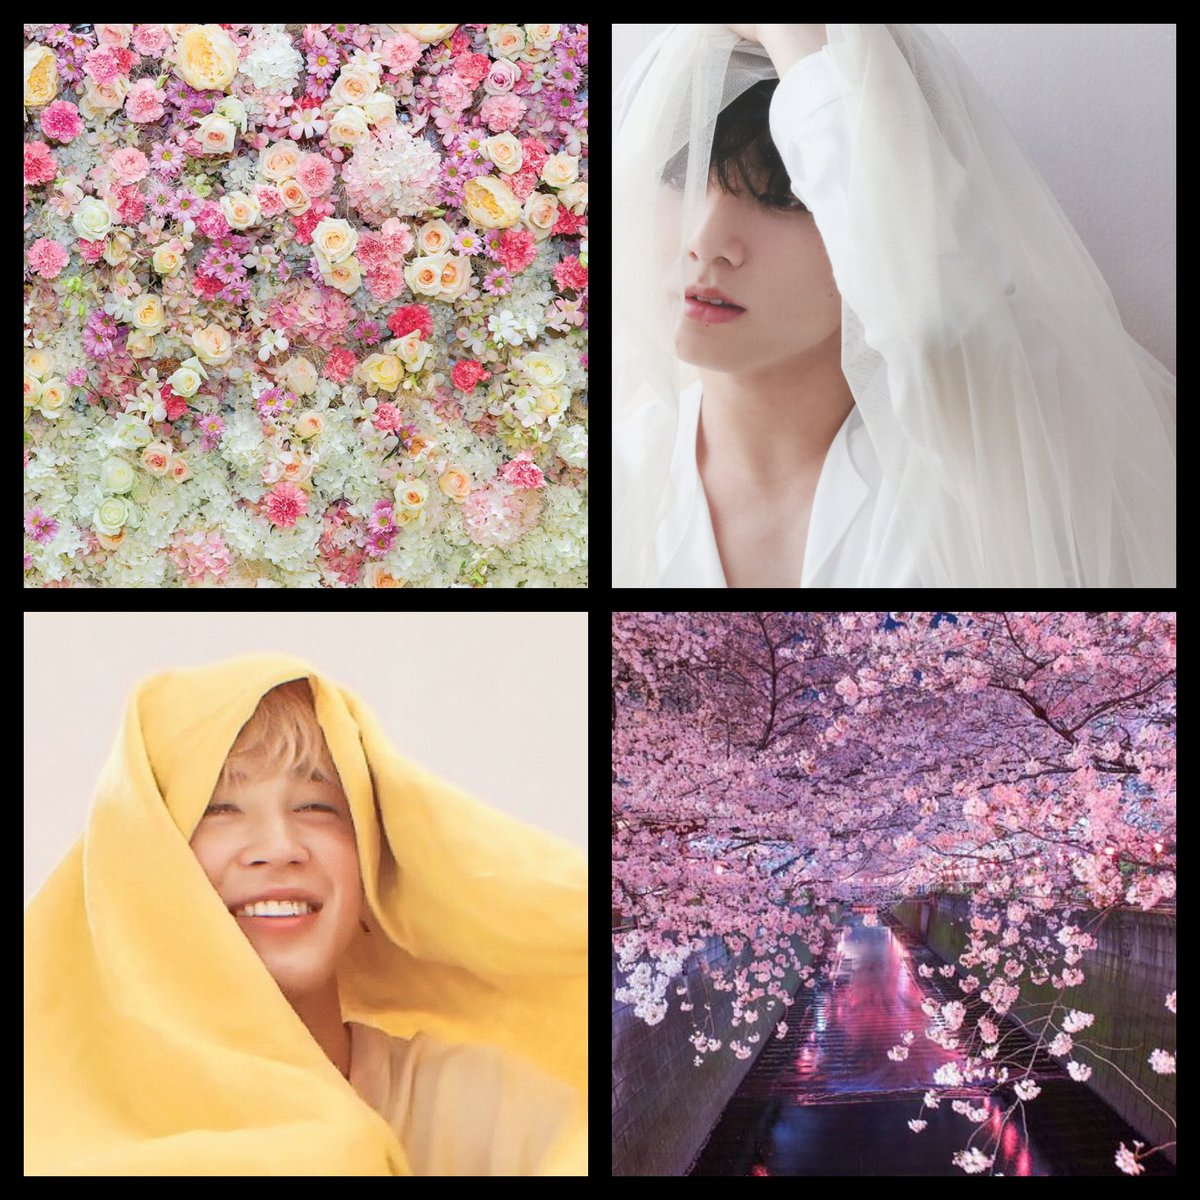 test Twitter Media - ᴊɪᴋᴏᴏᴋ ғᴀɴғɪᴄ | ᴀᴜ      My Catalyst, My Love   Jeongguk never thought he would be able to feel until he met him. Jimin. The boy with butterflies swirling around his head and too many emotions trapped in his heart. Too many to keep them all to himself. https://t.co/HR1pQUUFUk